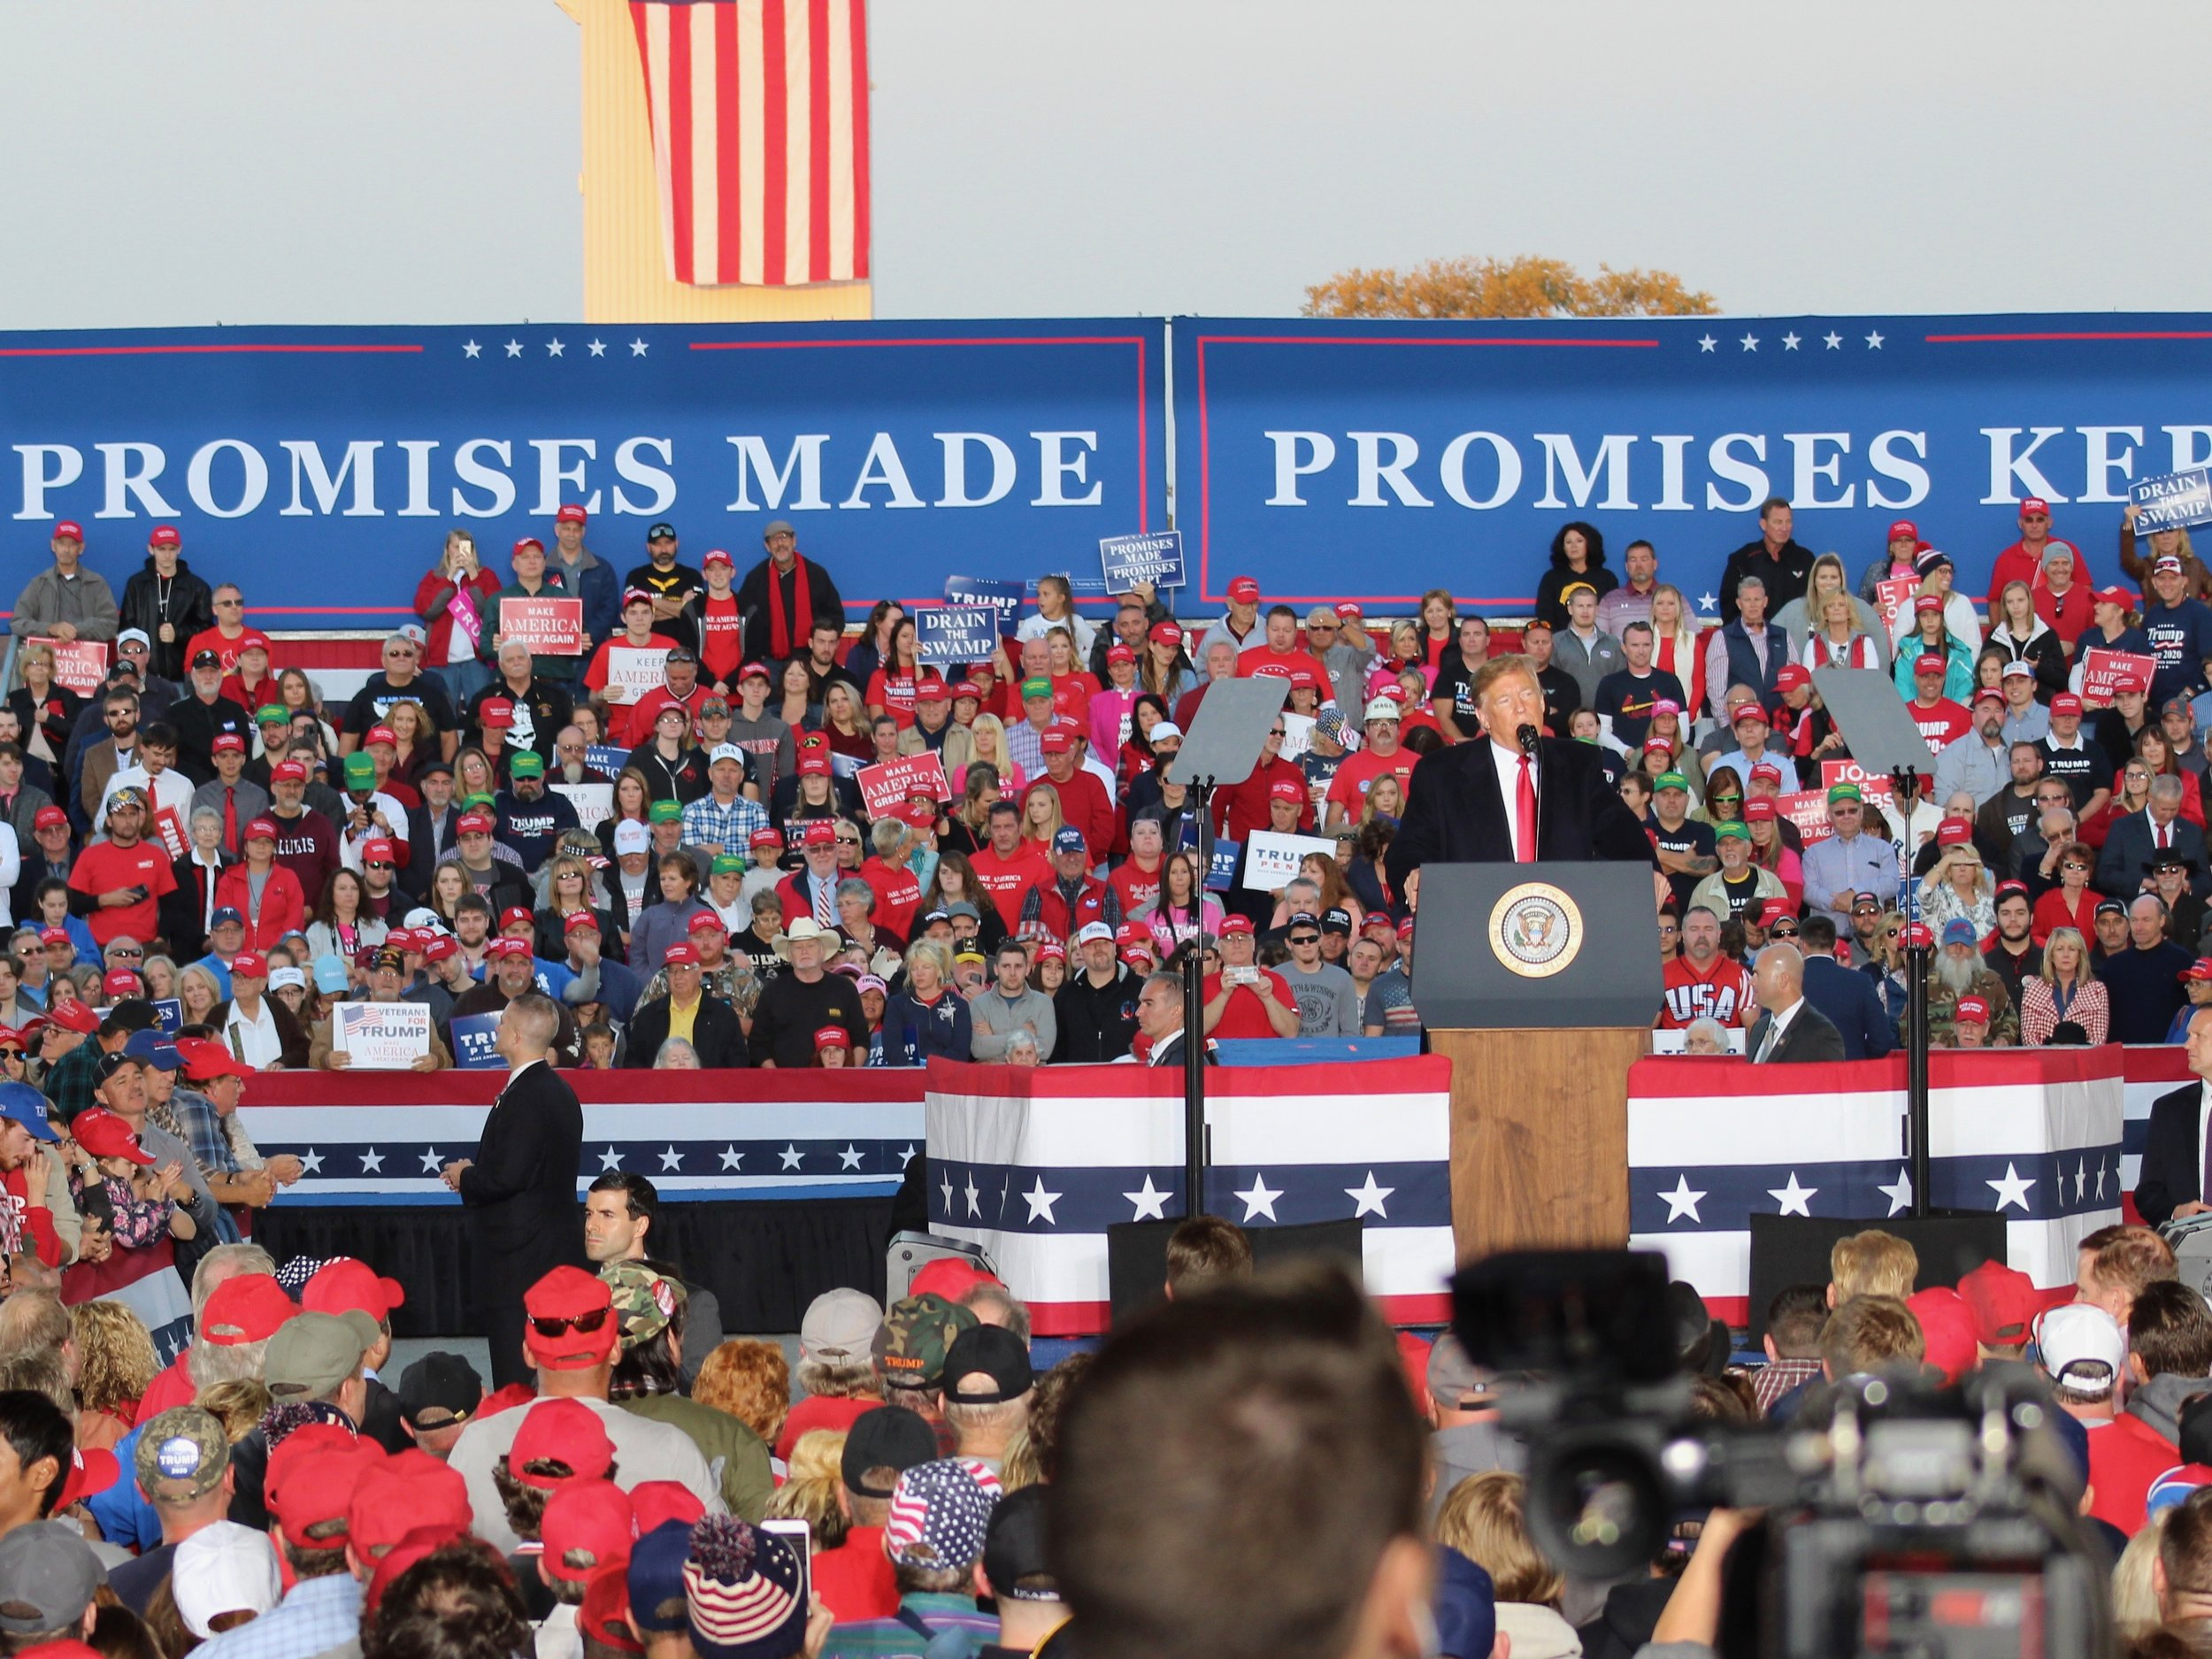 President Trump addresses supporters at a campaign rally in Murphysboro before last fall's election. (One Illinois/Ted Cox)